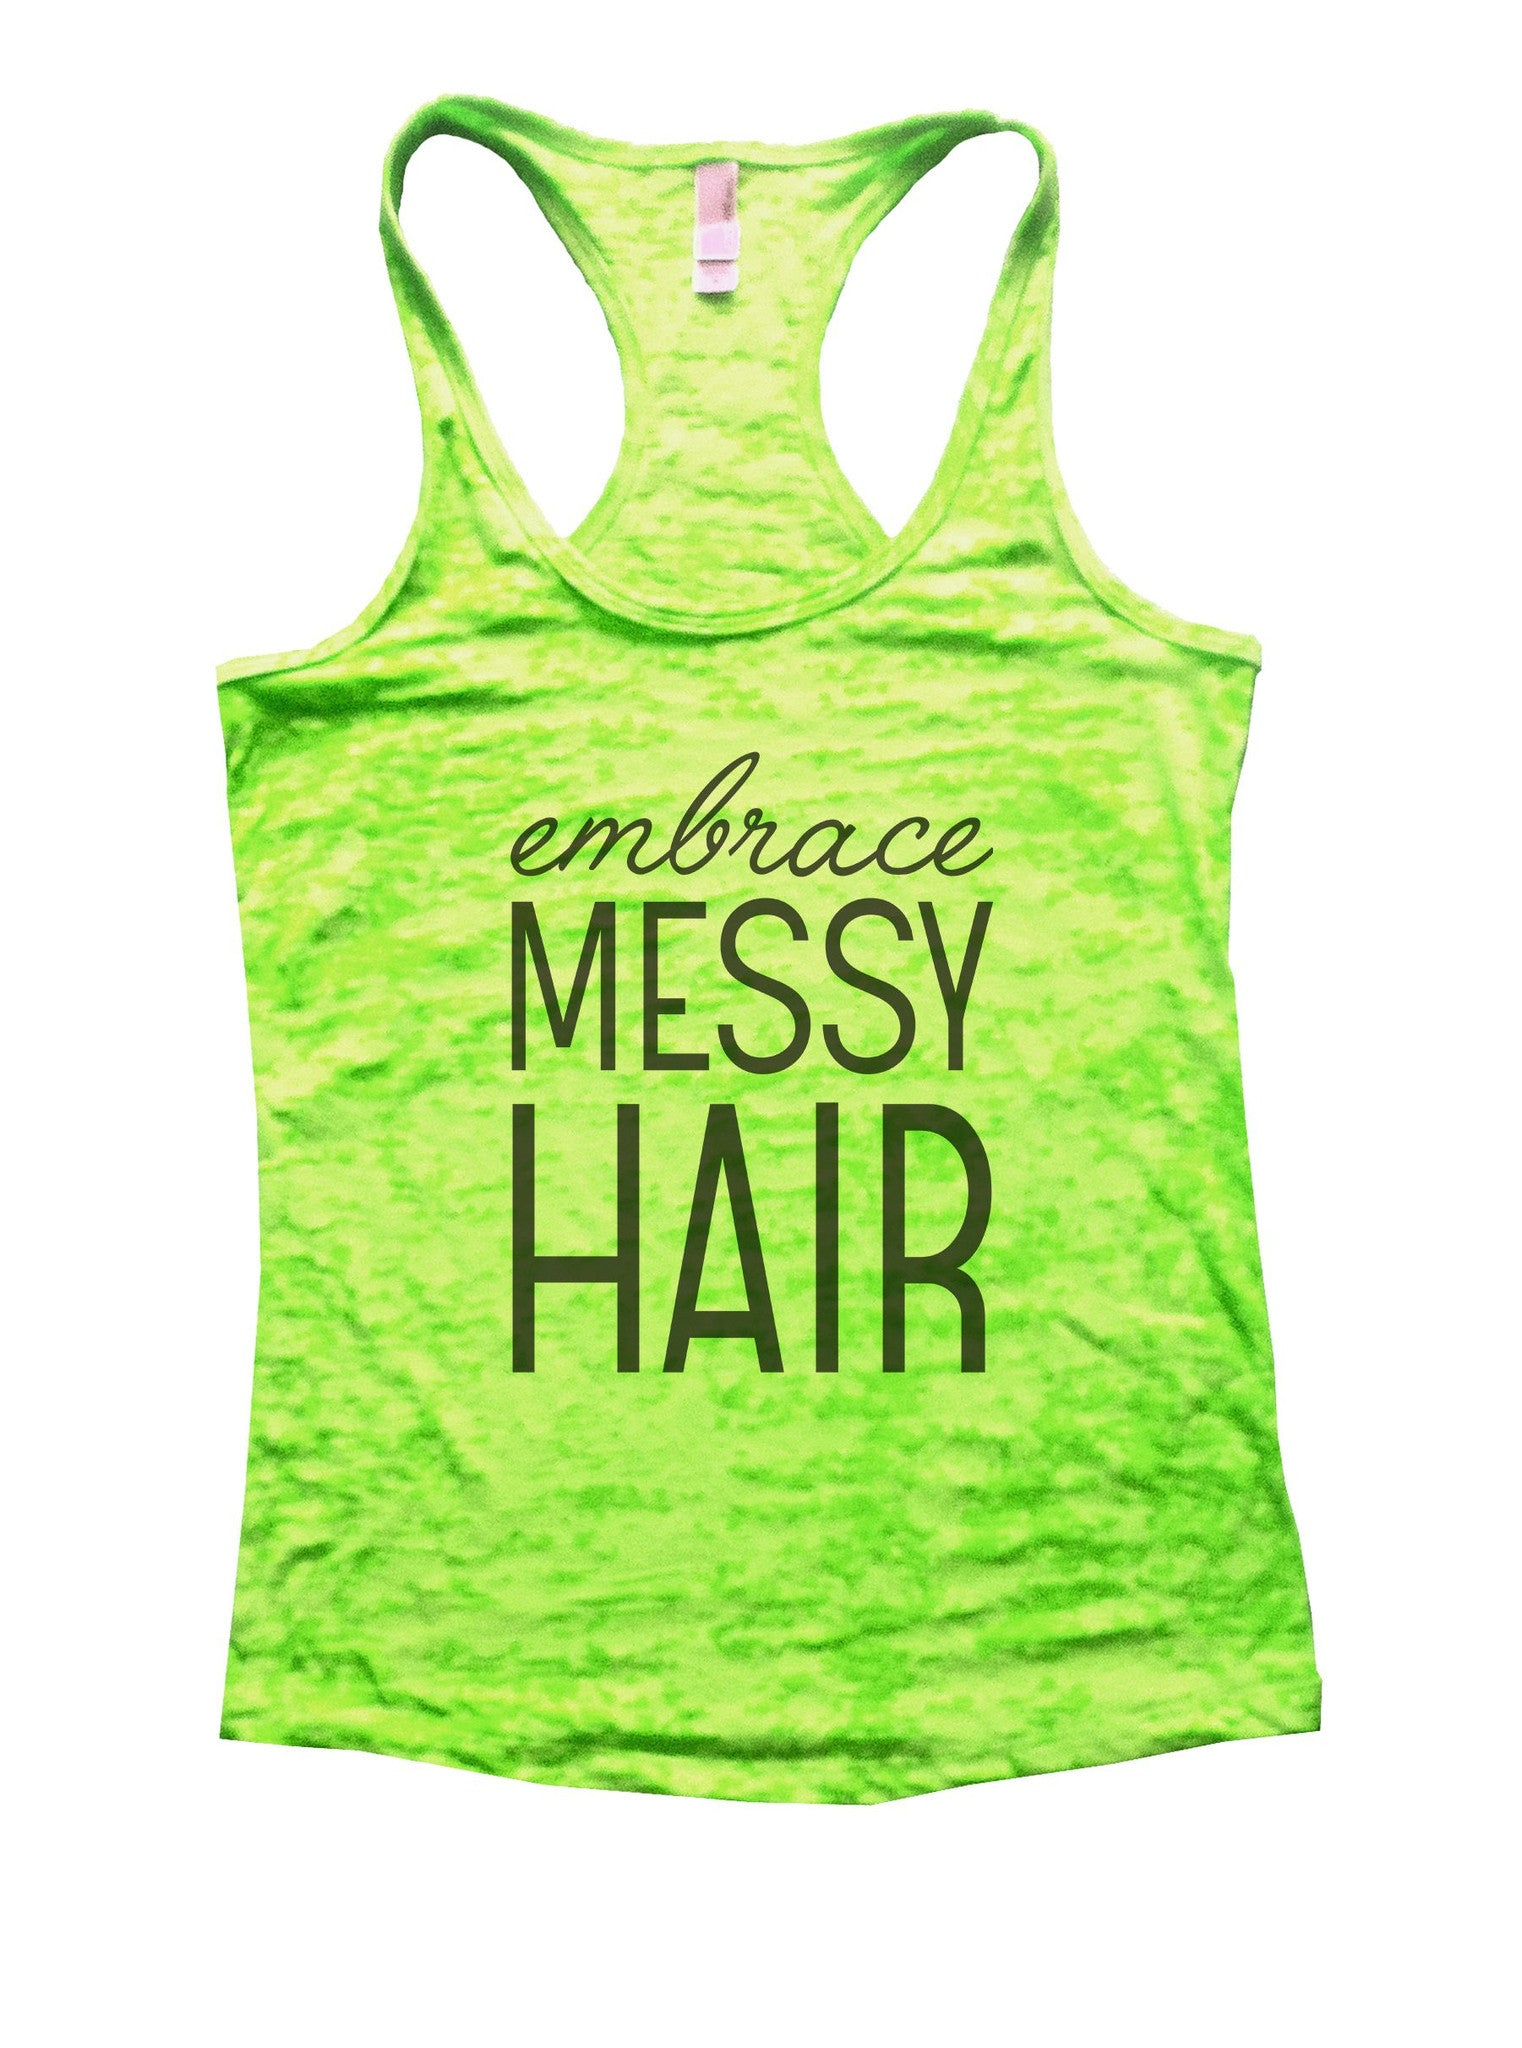 Embrace Messy Hair Burnout Tank Top By BurnoutTankTops.com - 940 - Funny Shirts Tank Tops Burnouts and Triblends  - 1